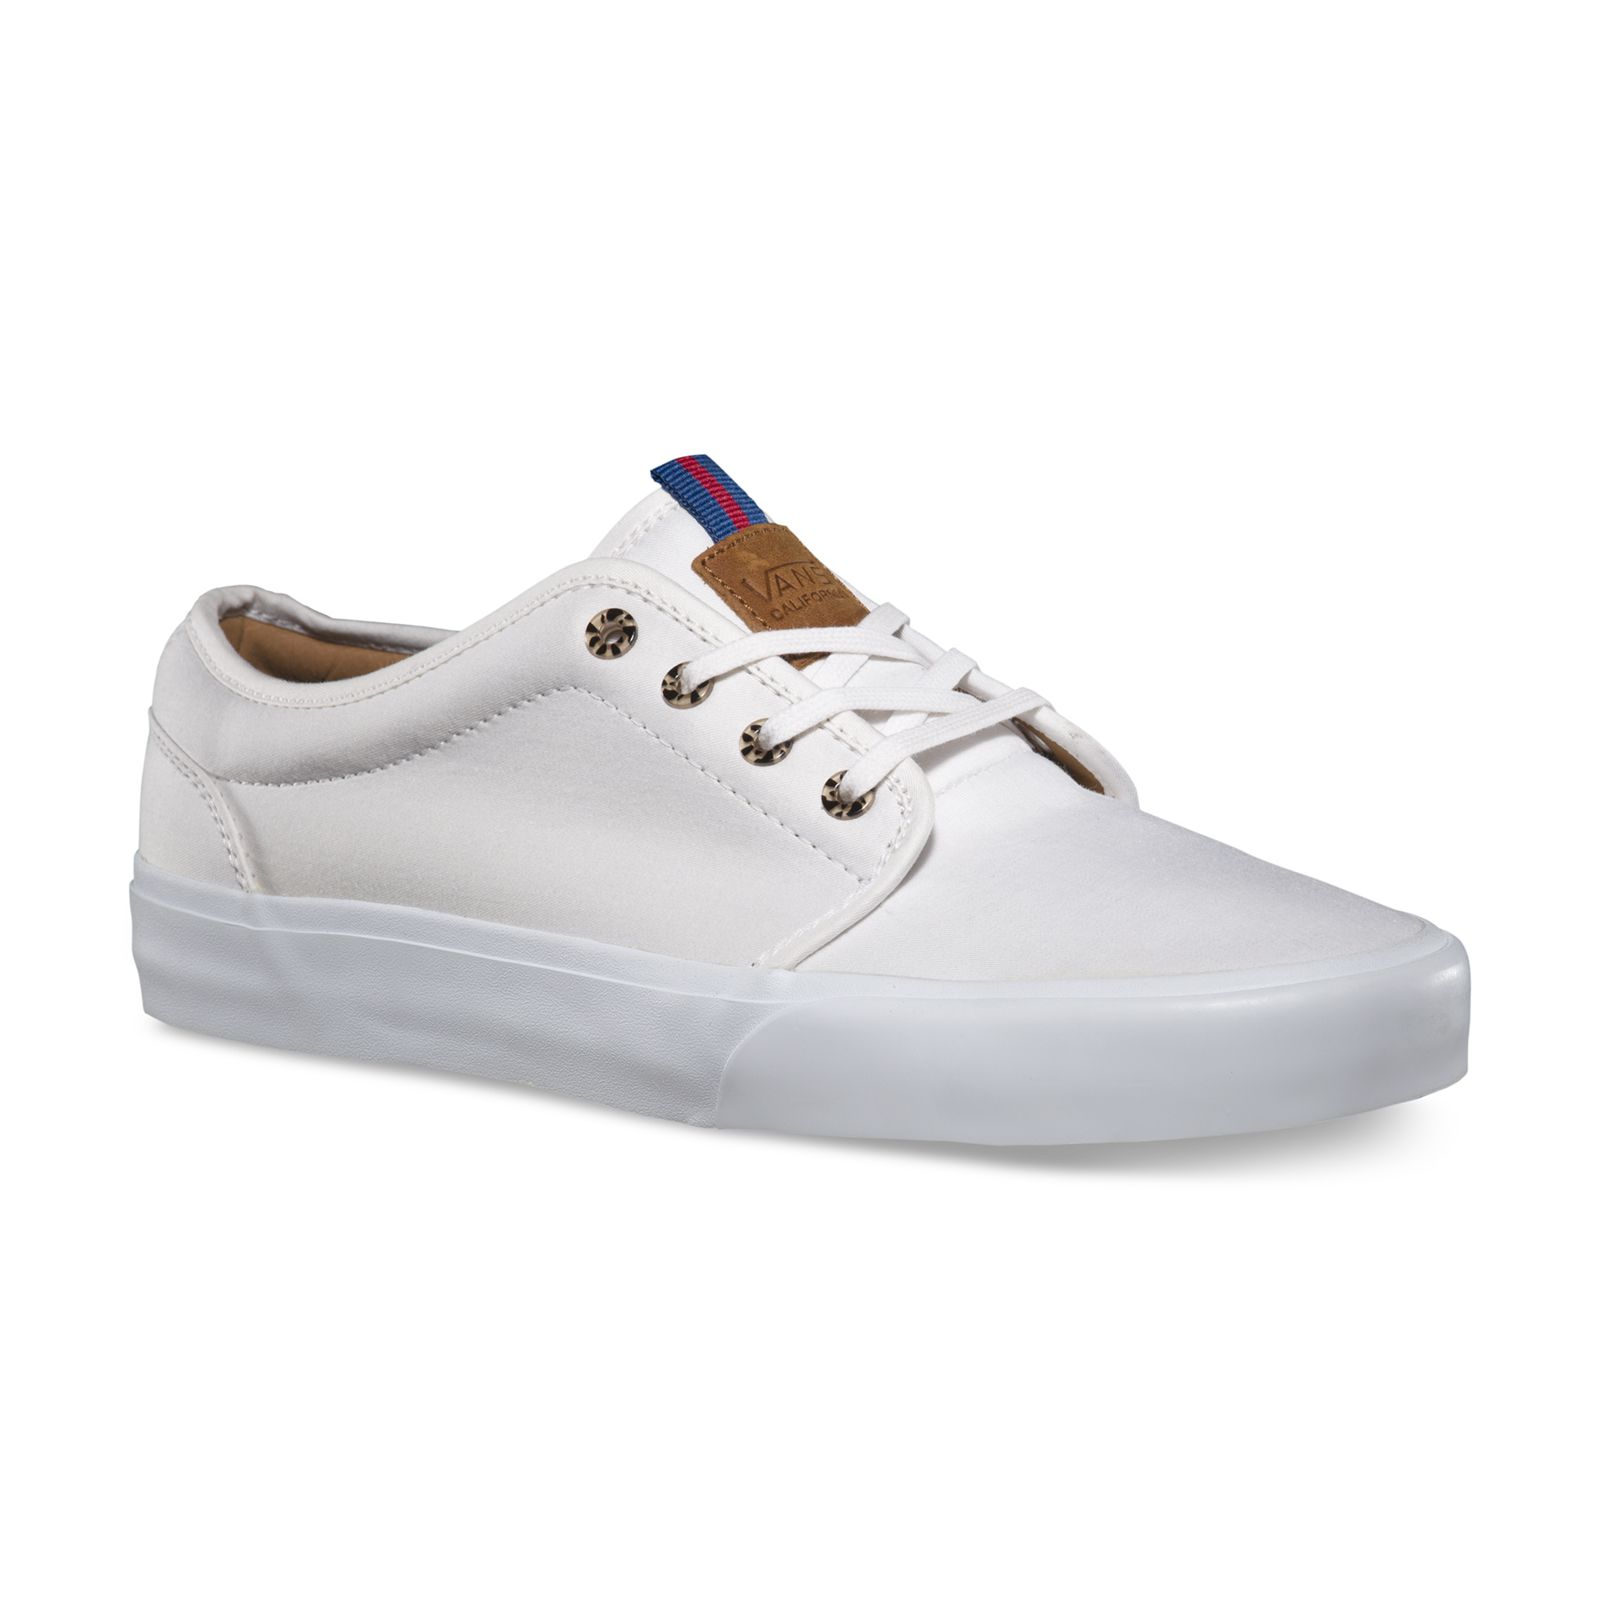 62058aaaf6e Find twill shoes at Vans. Shop for twill shoes